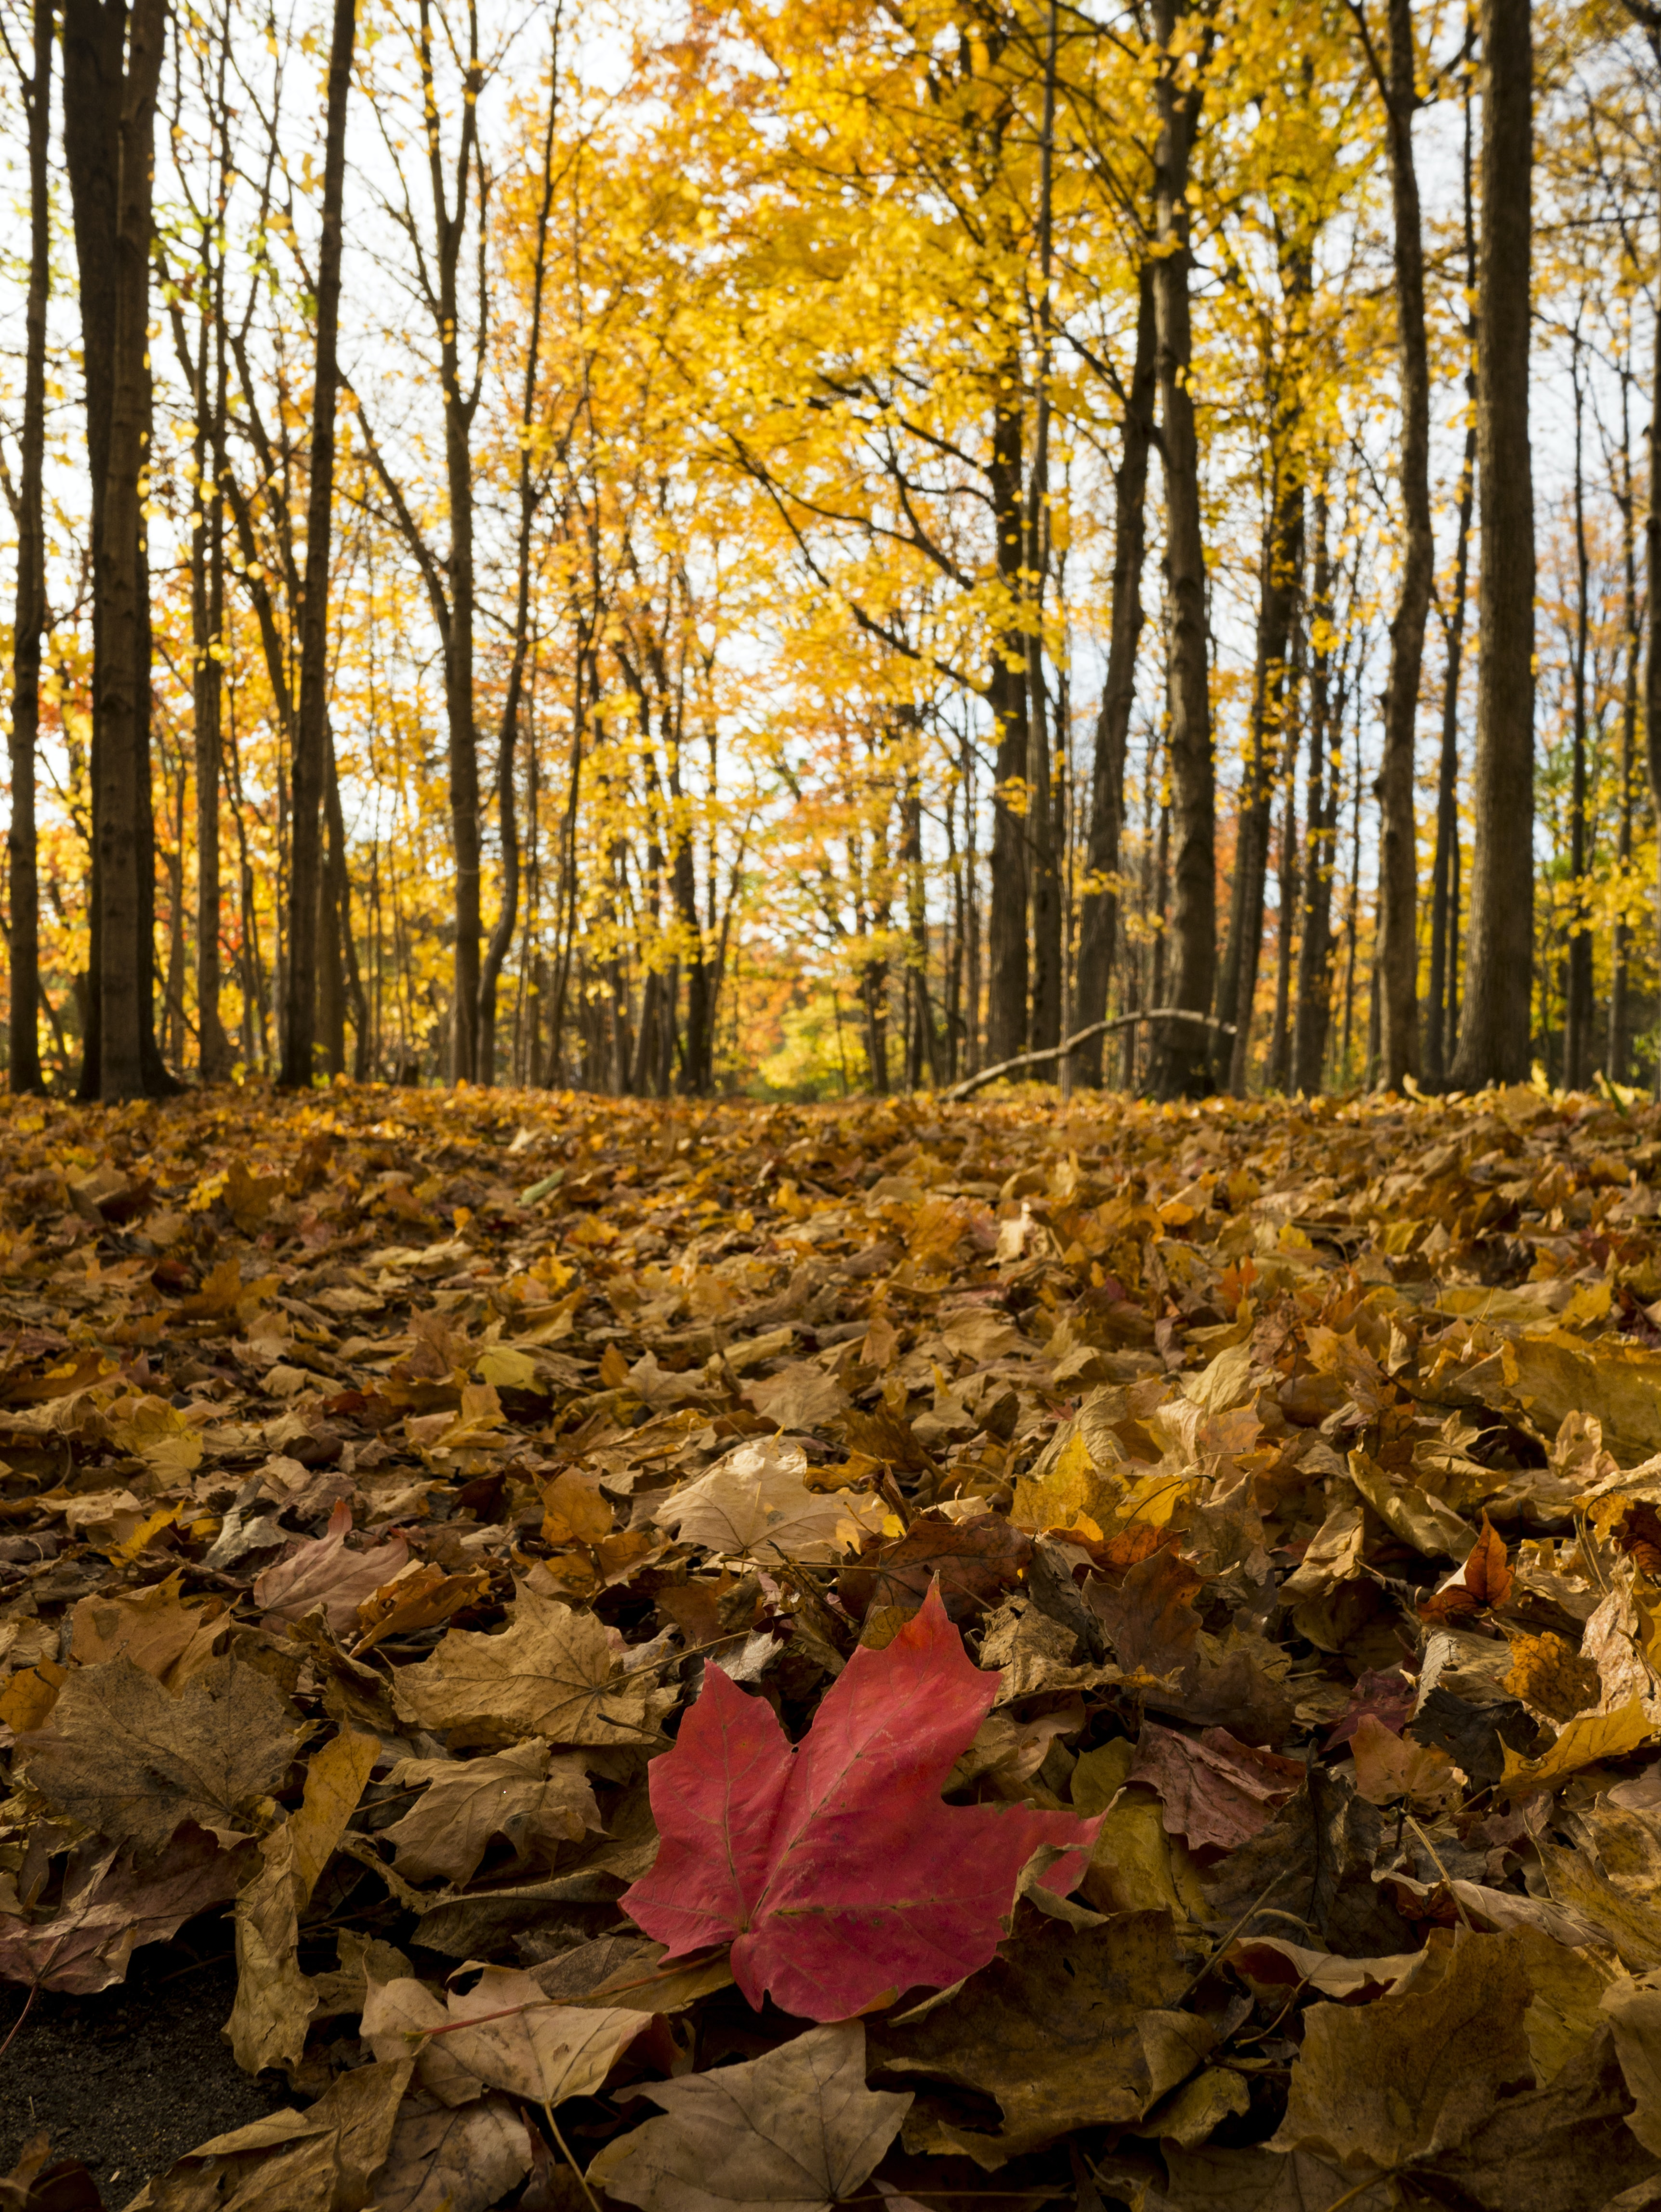 A red leaf among many orange leaves on the ground near a forest.